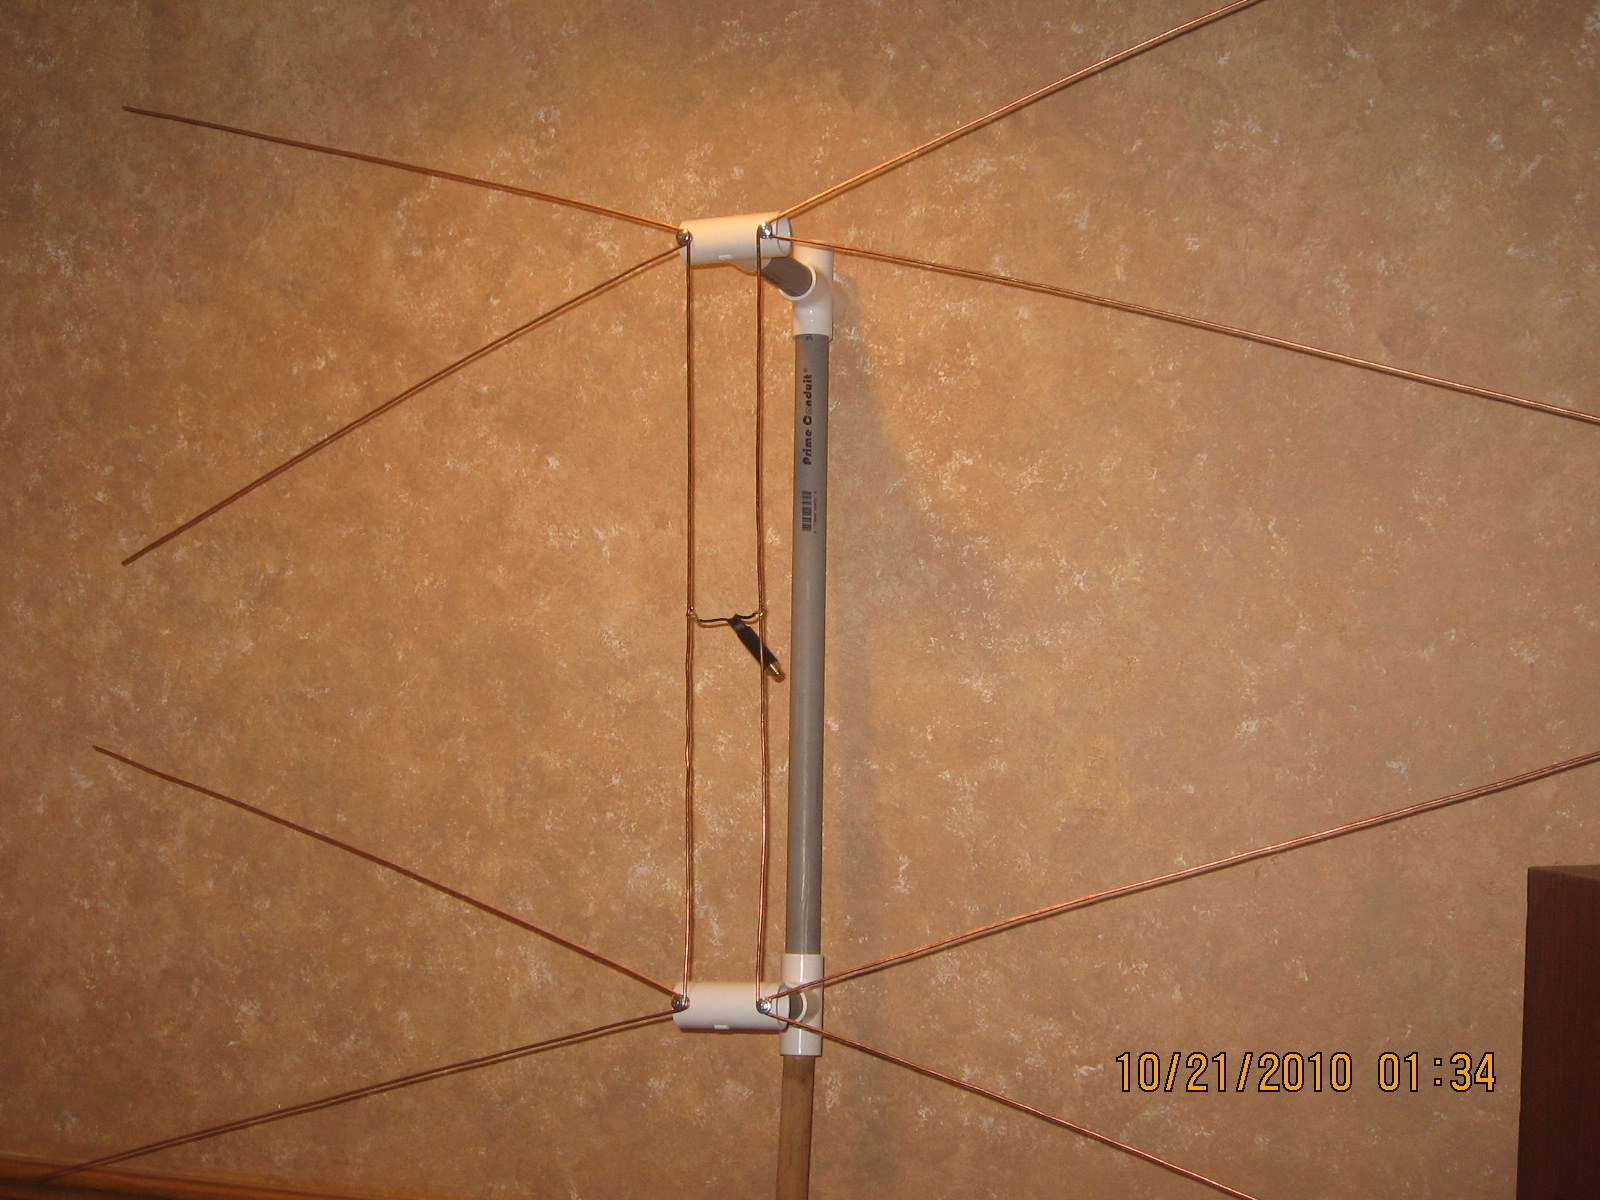 Would This Antenna S Receptivity Be Changed If This Was